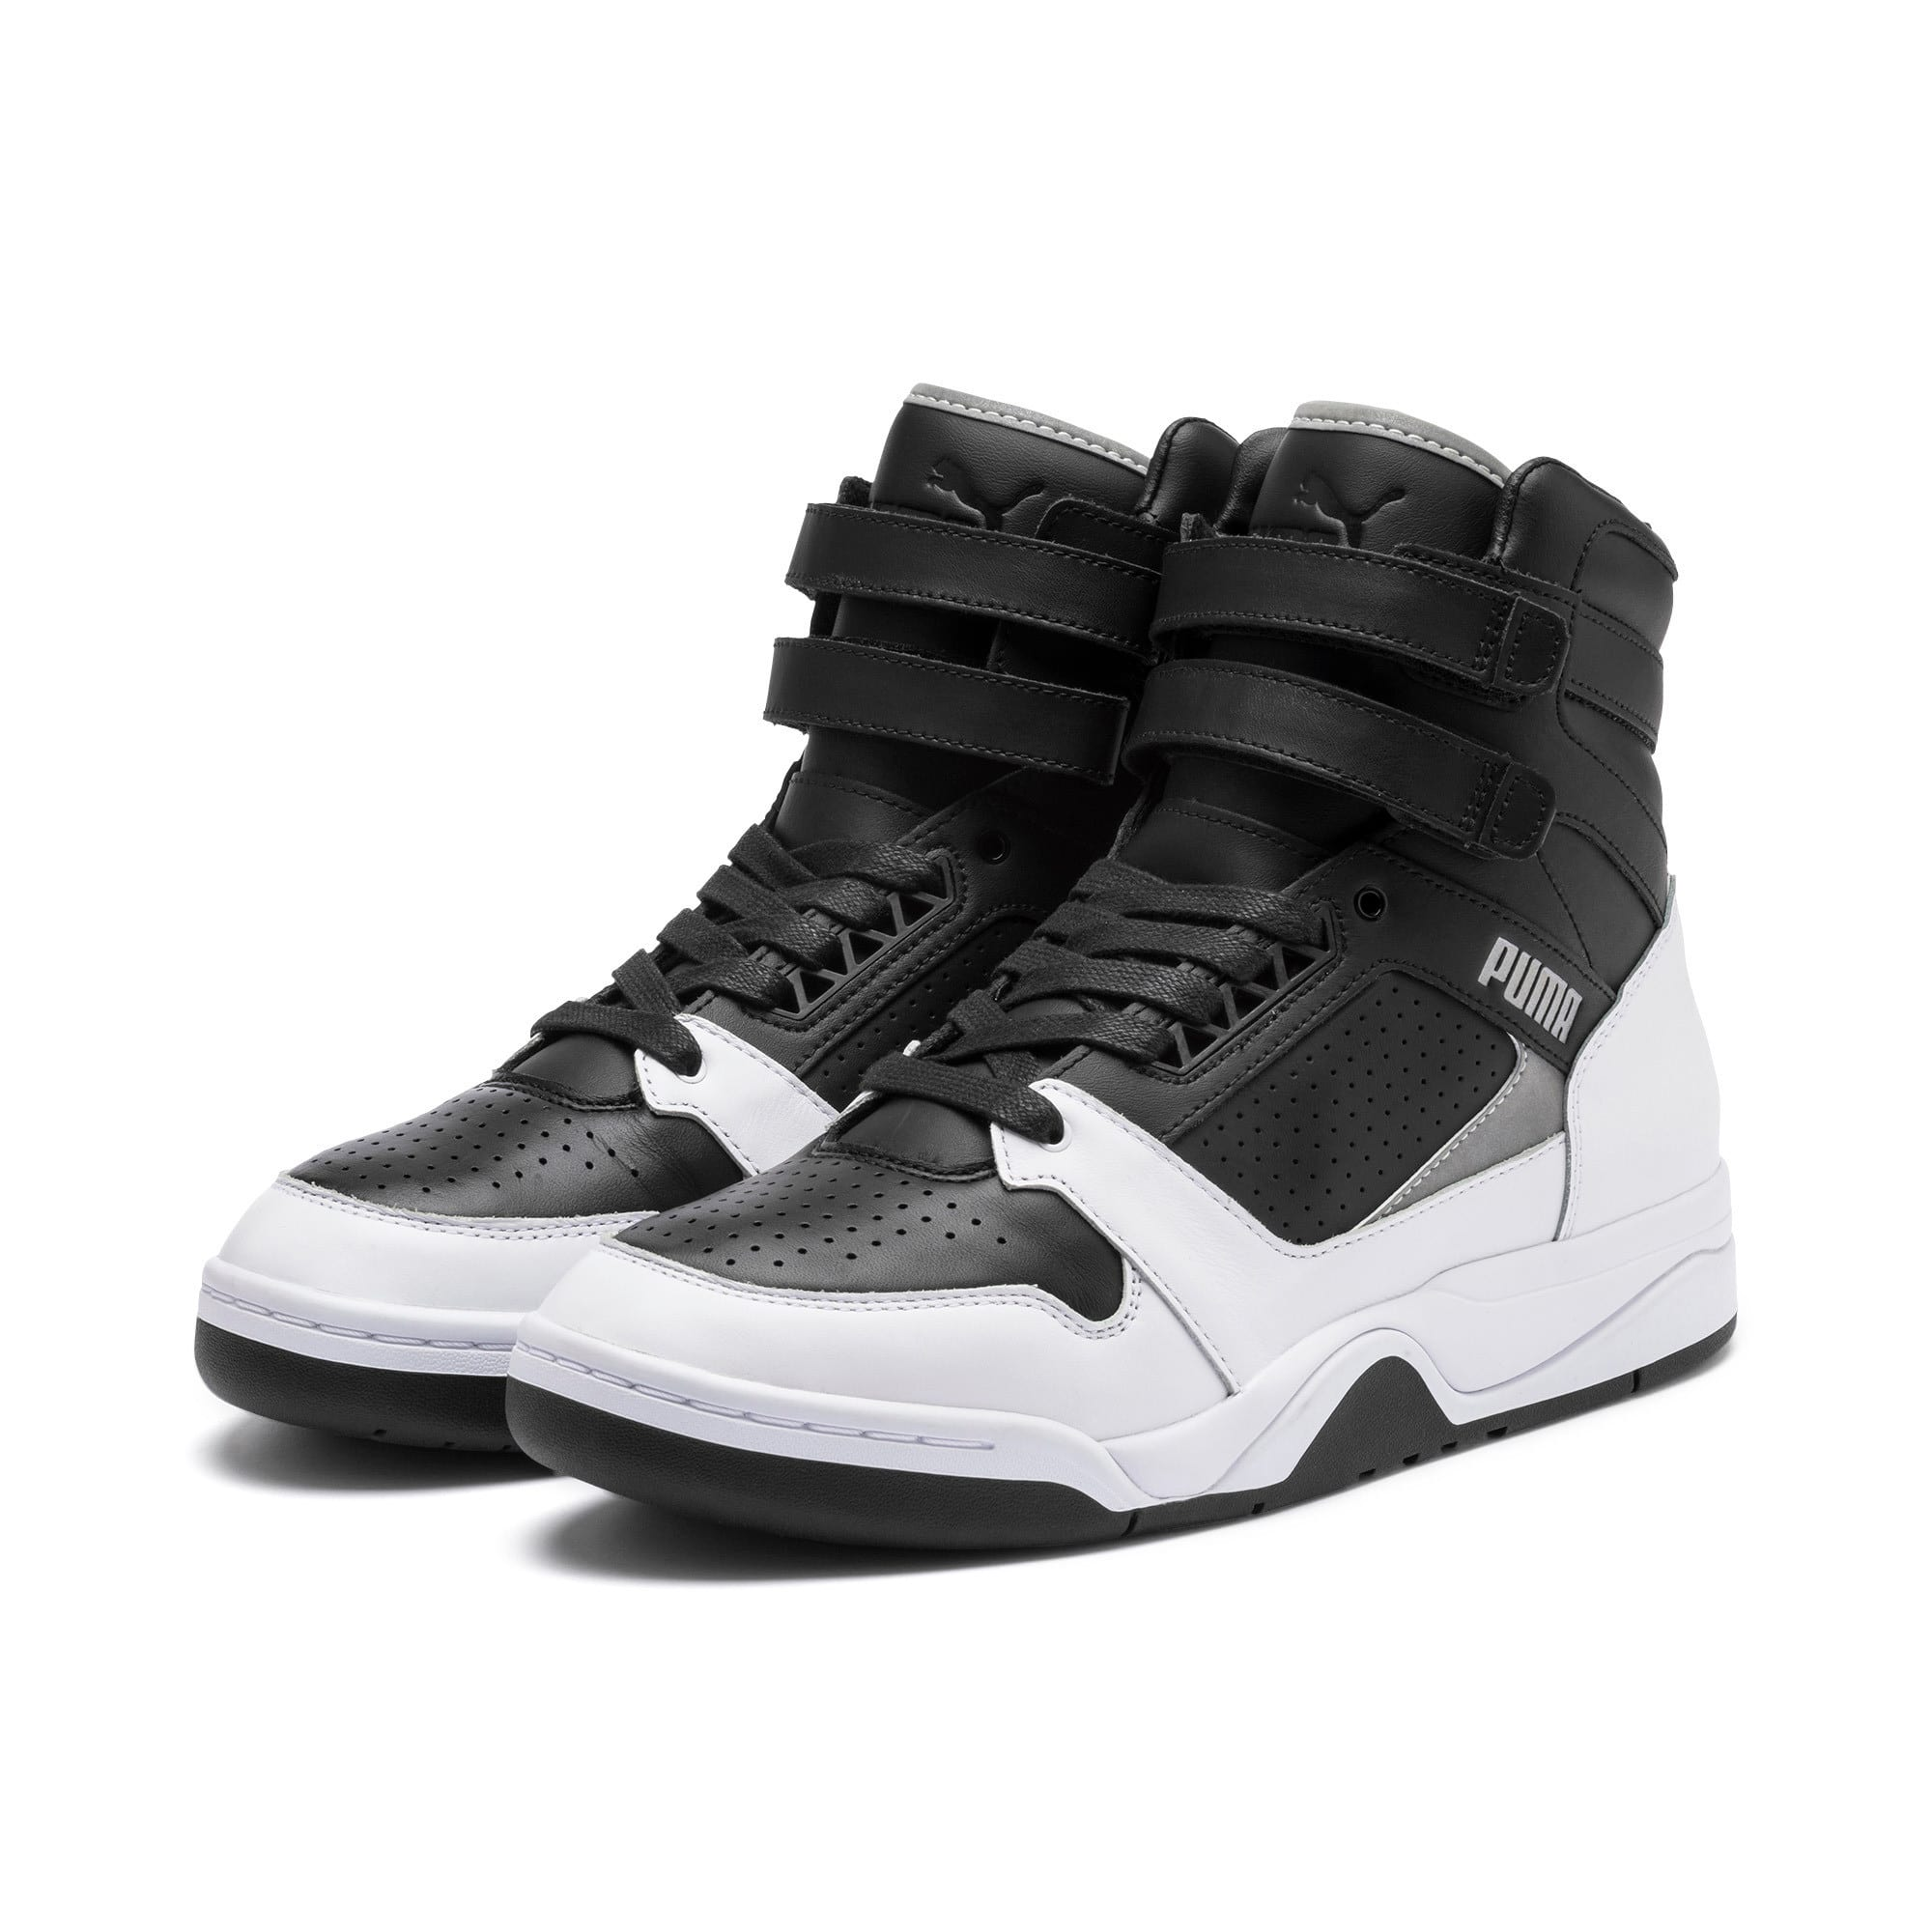 Thumbnail 2 of Palace Guard Mid Moto-X Sneakers, Puma Black-Puma Silver-, medium